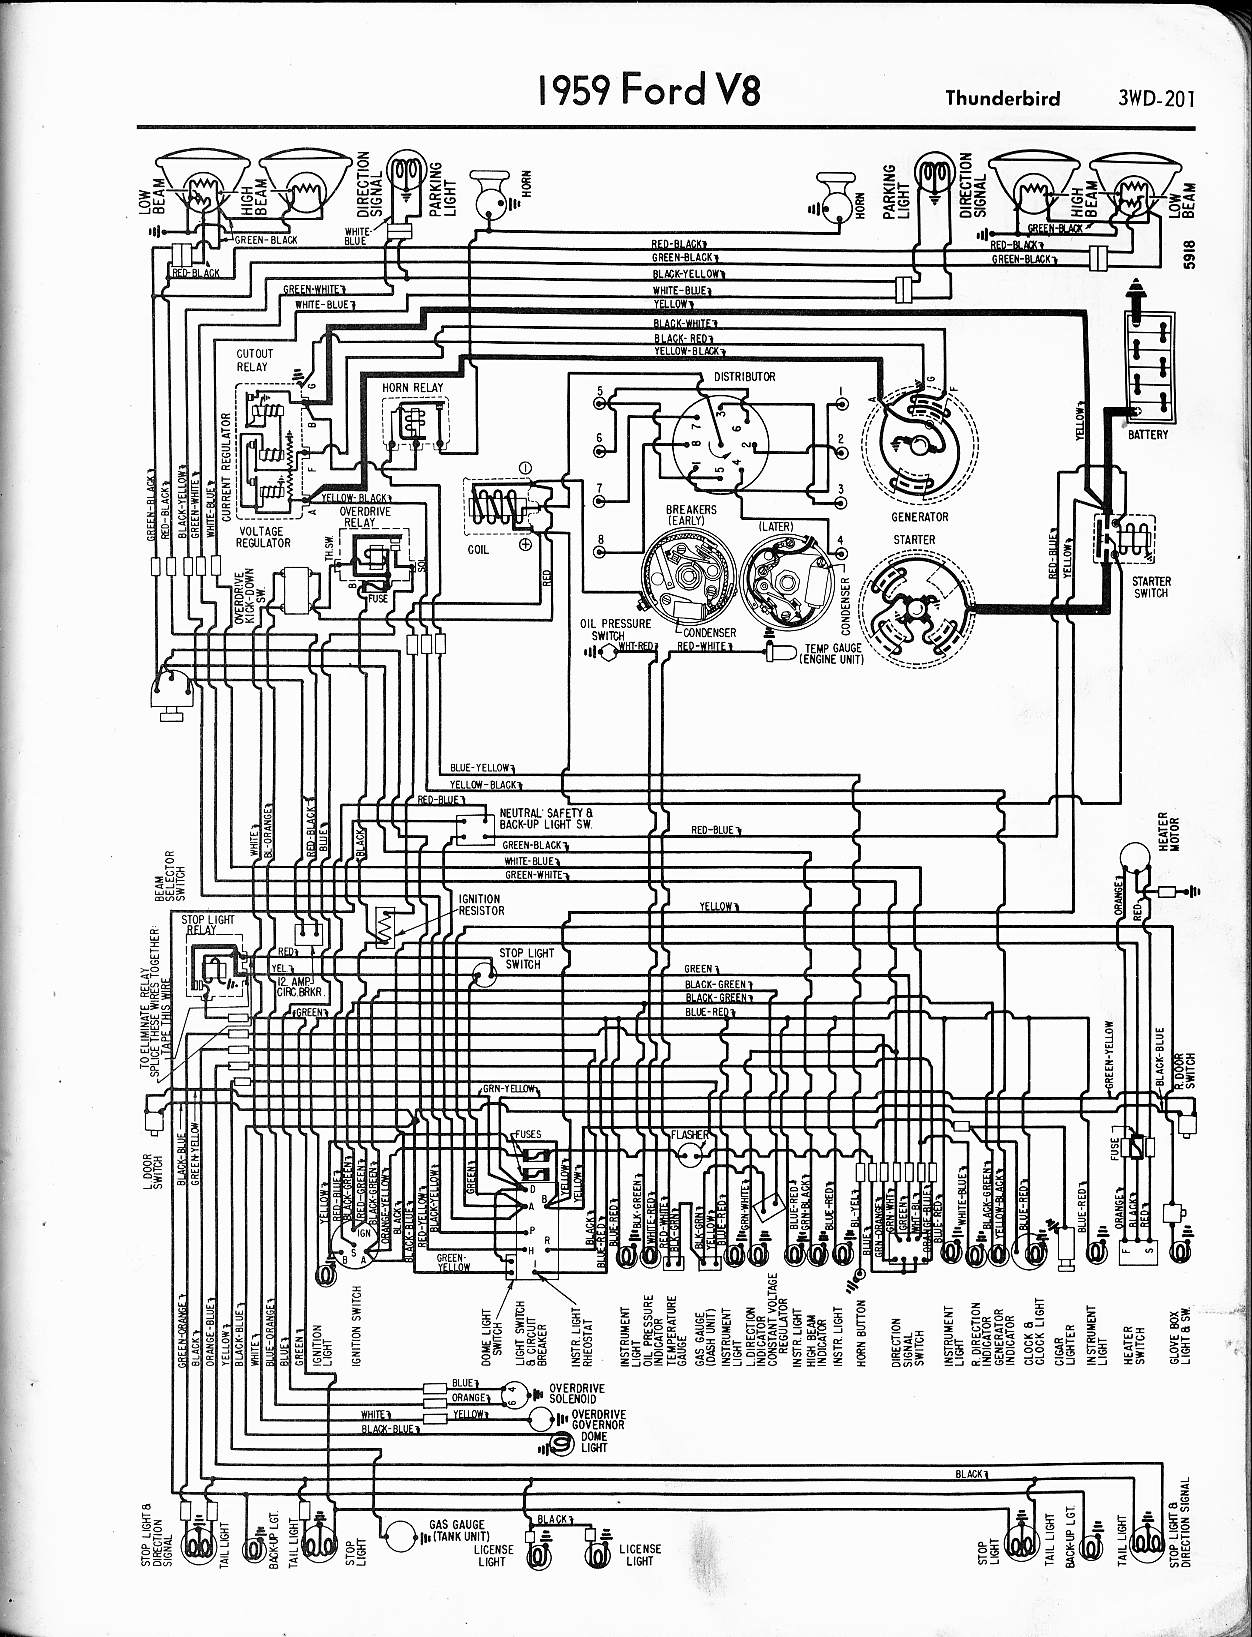 1977 ford ranchero wiring diagrams schematic wiring diagrams u2022 rh detox  design co 1981 ford f150 ignition wiring diagram 1981 ford f100 tail light  ...